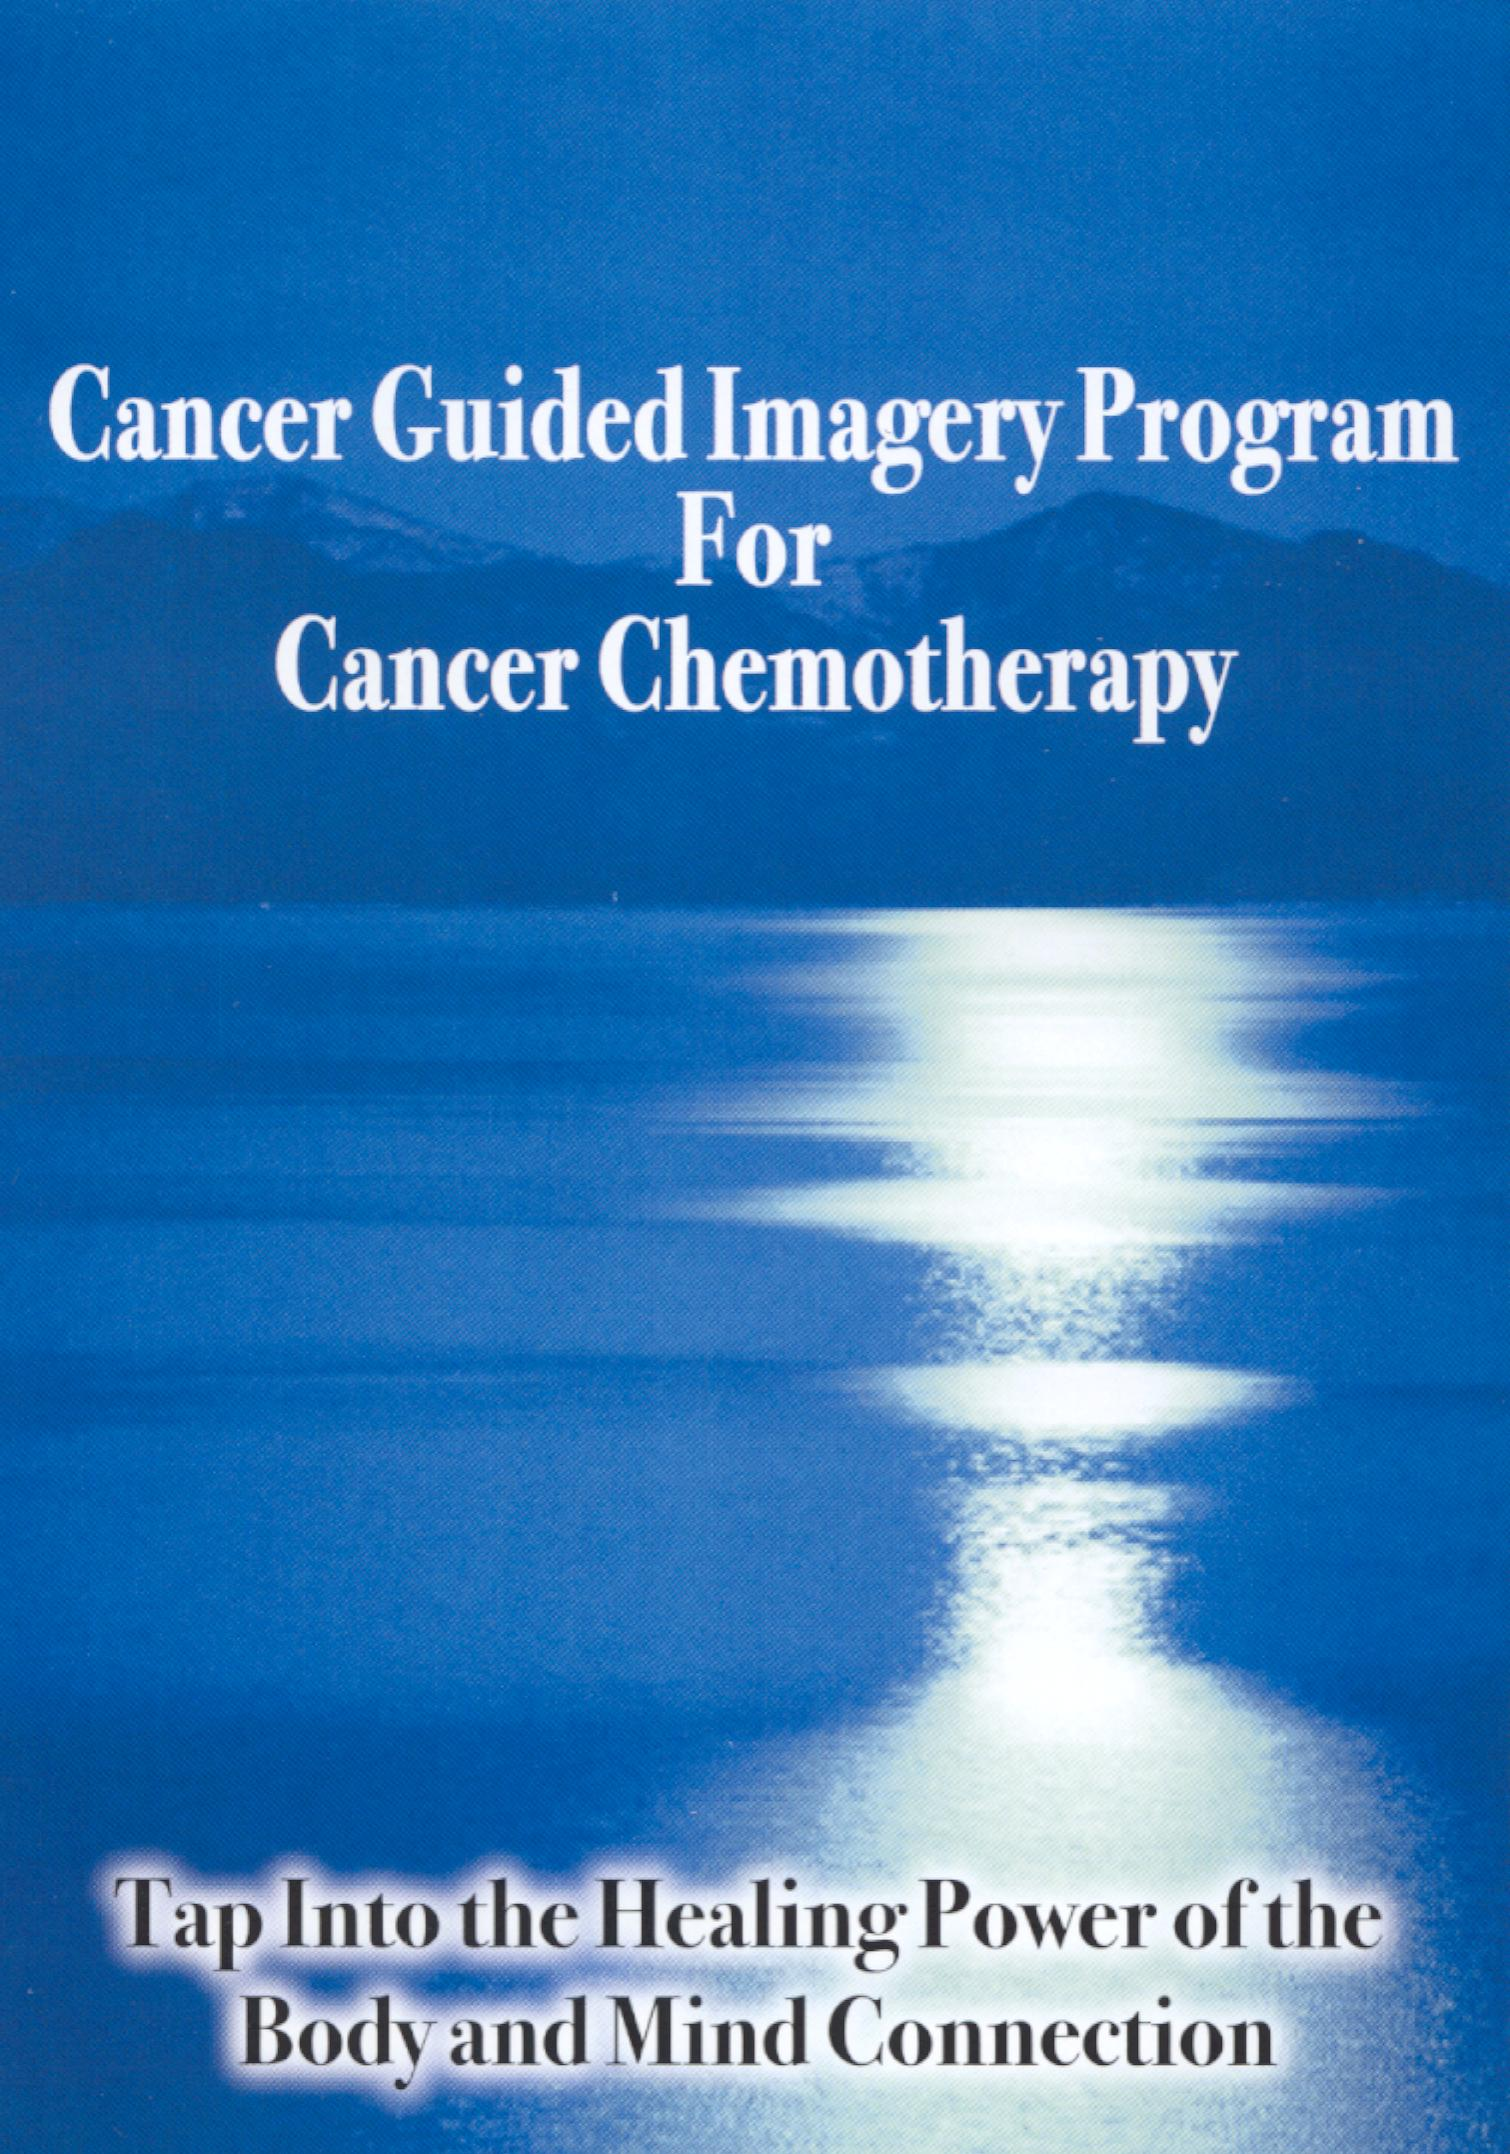 Cancer Guided Imagery Program for Cancer Chemotherapy